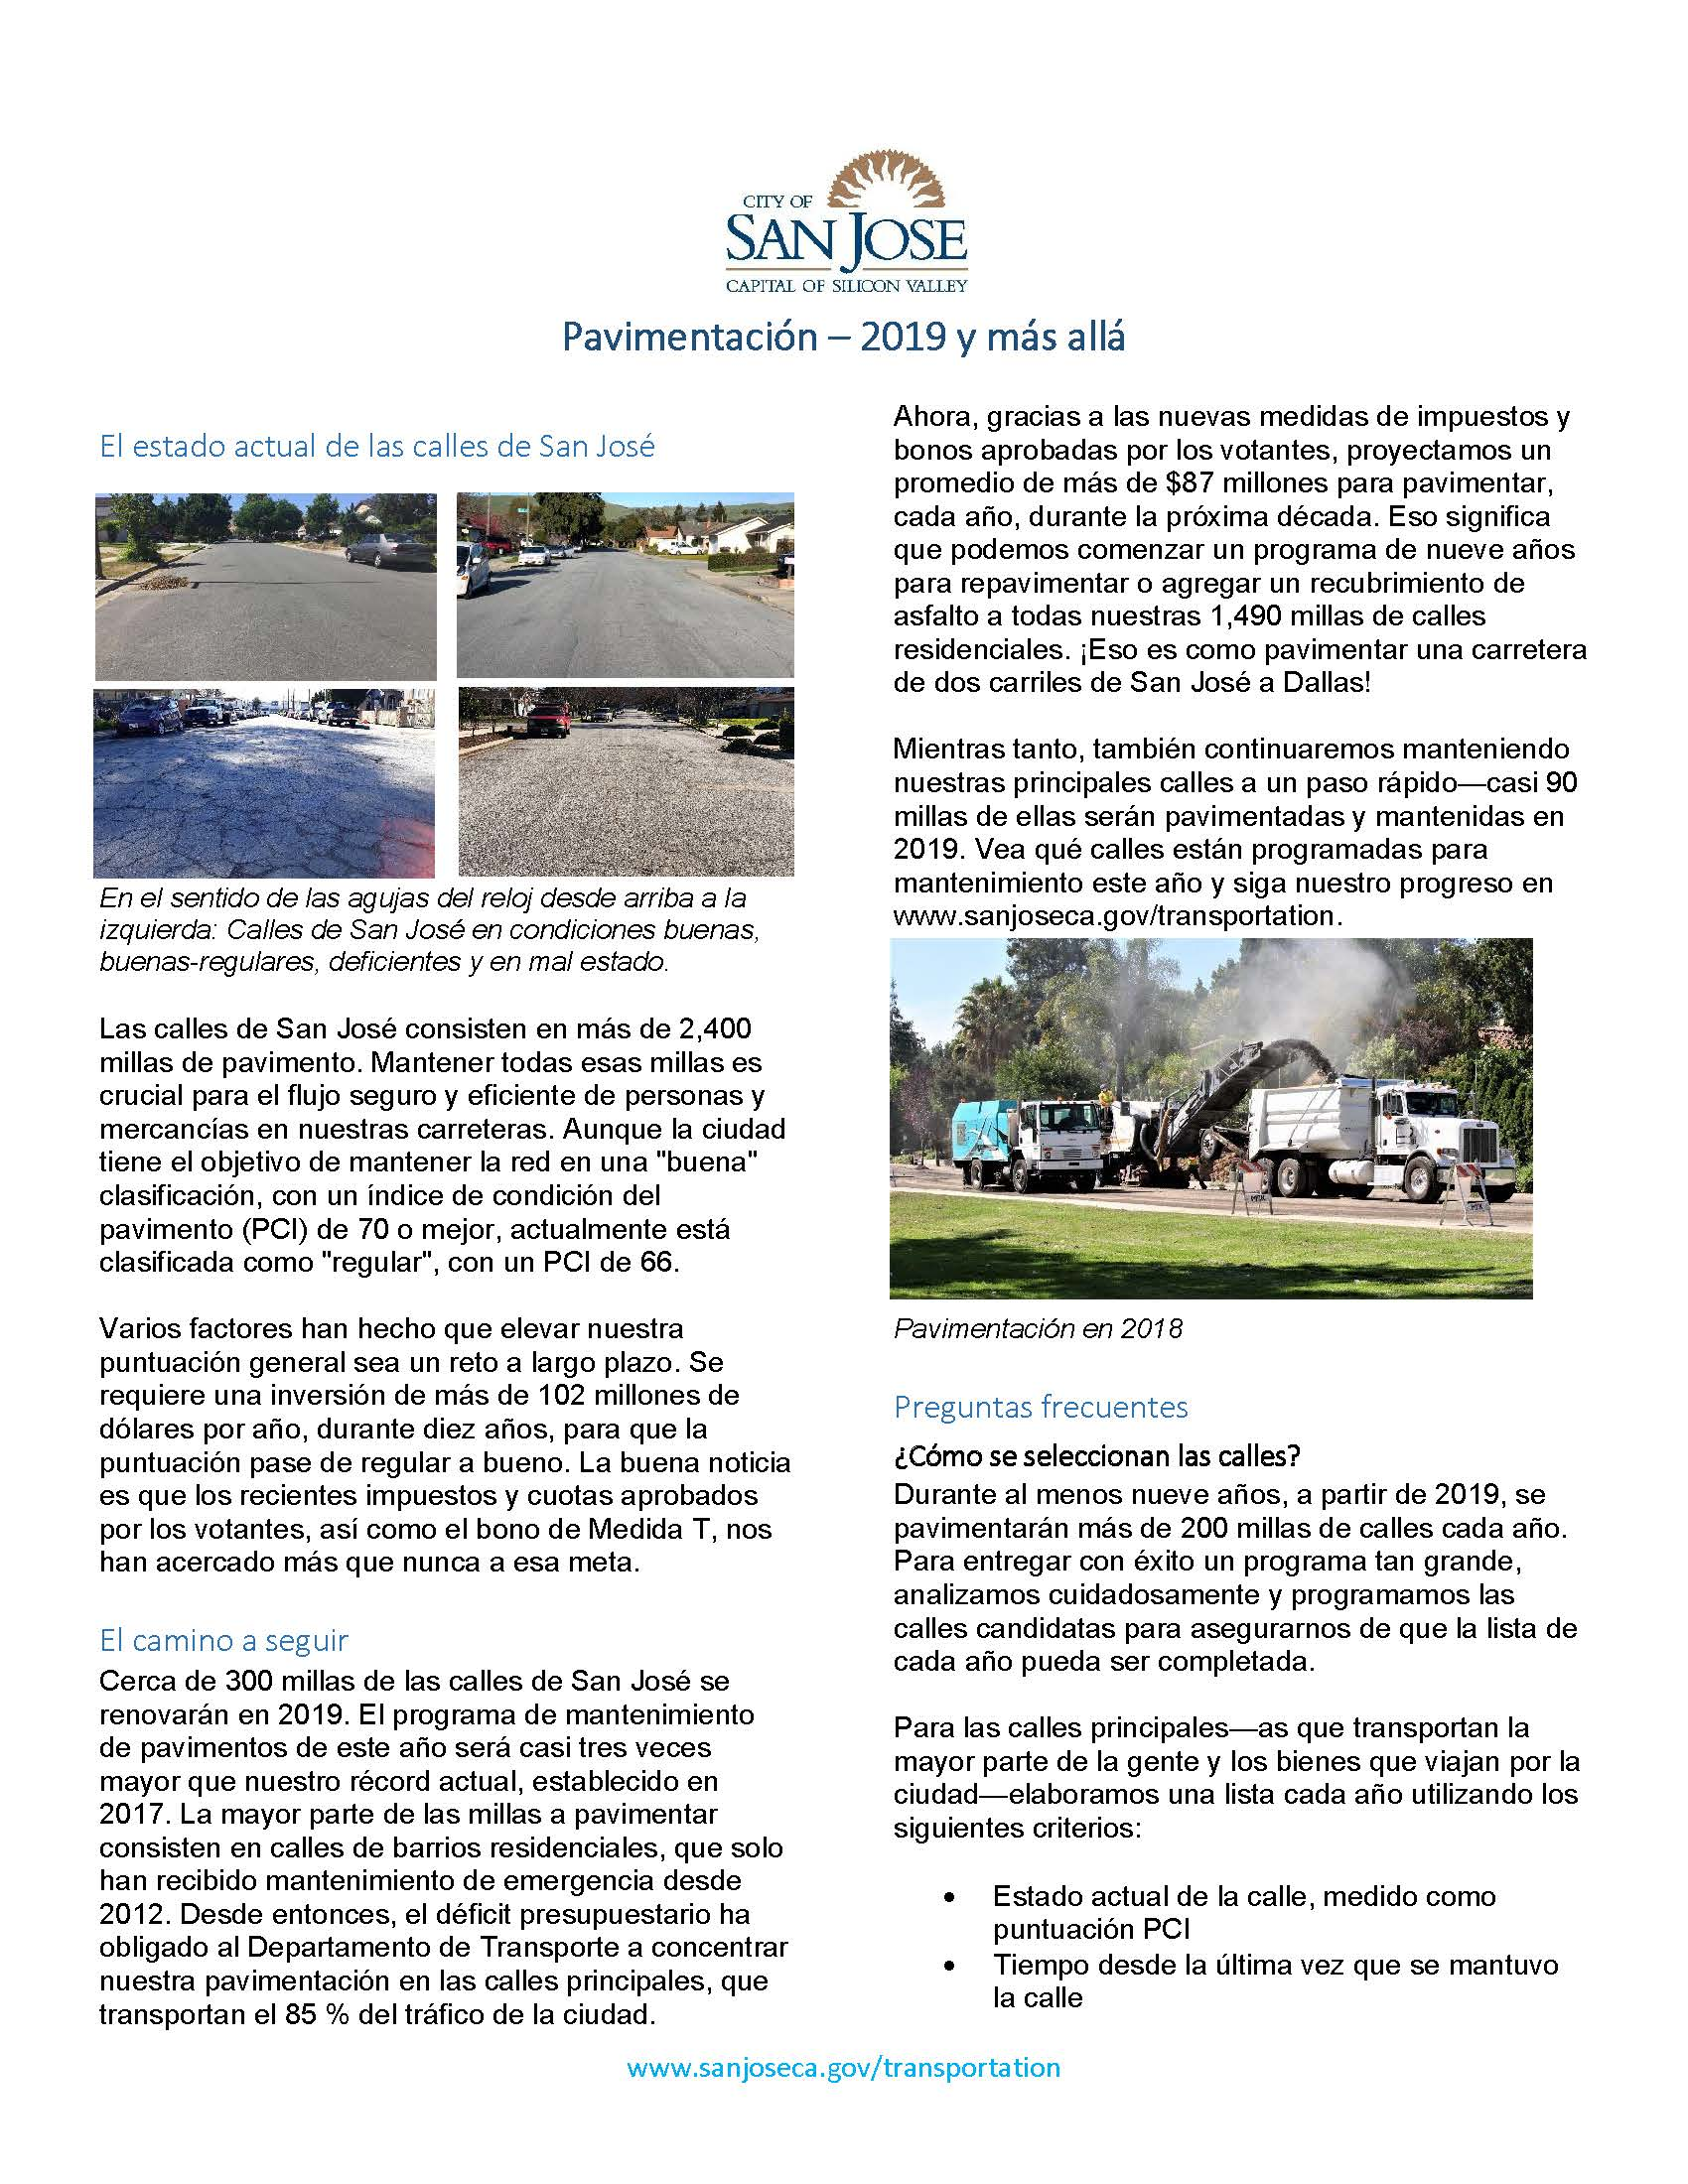 Pavement maintenance explainer 2019 2-column r2-Spanish_Page_1